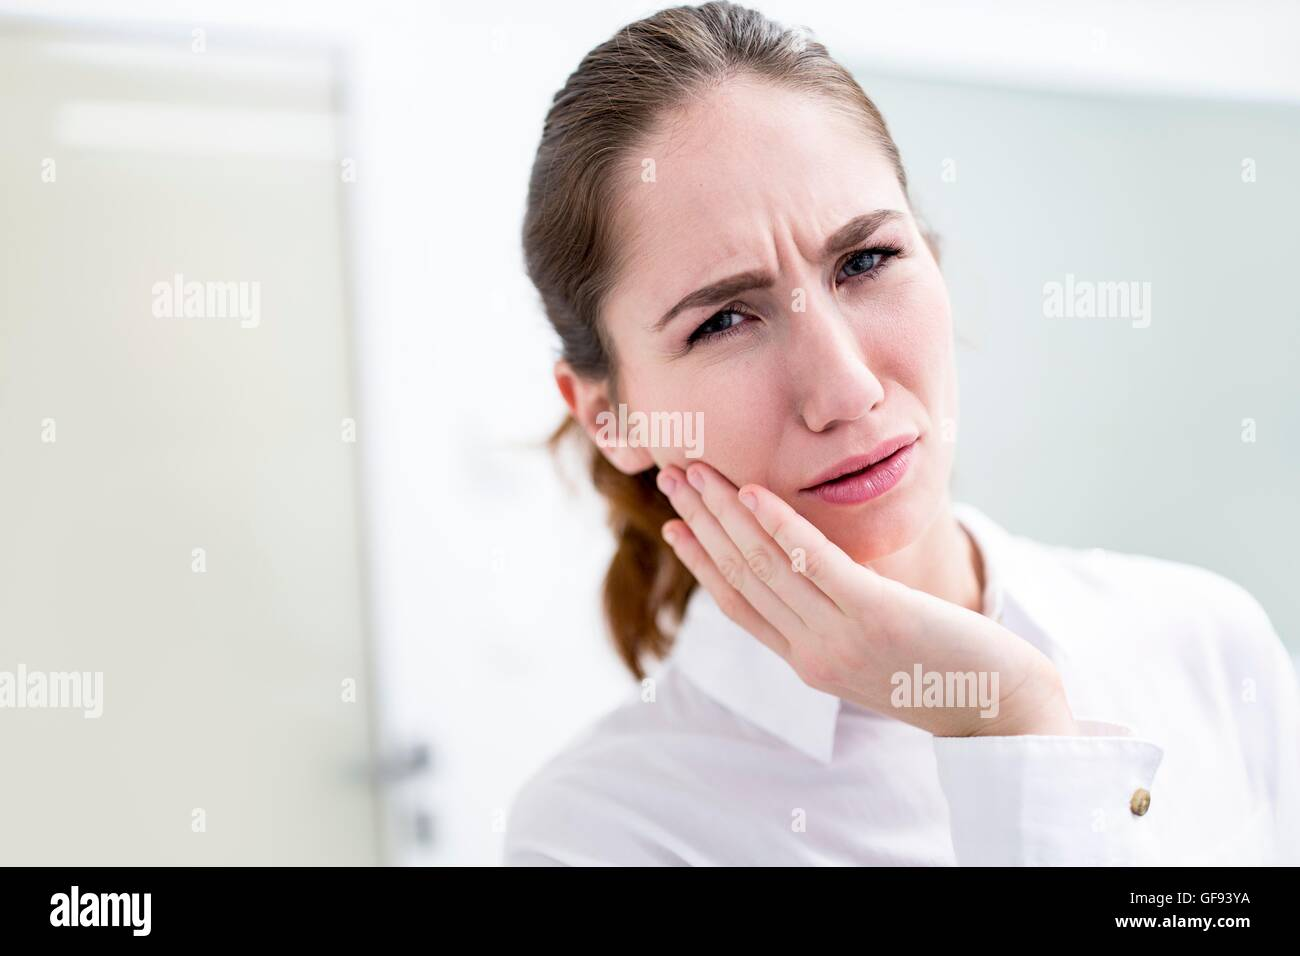 MODEL RELEASED. Young woman suffering from toothache, studio shot. - Stock Image